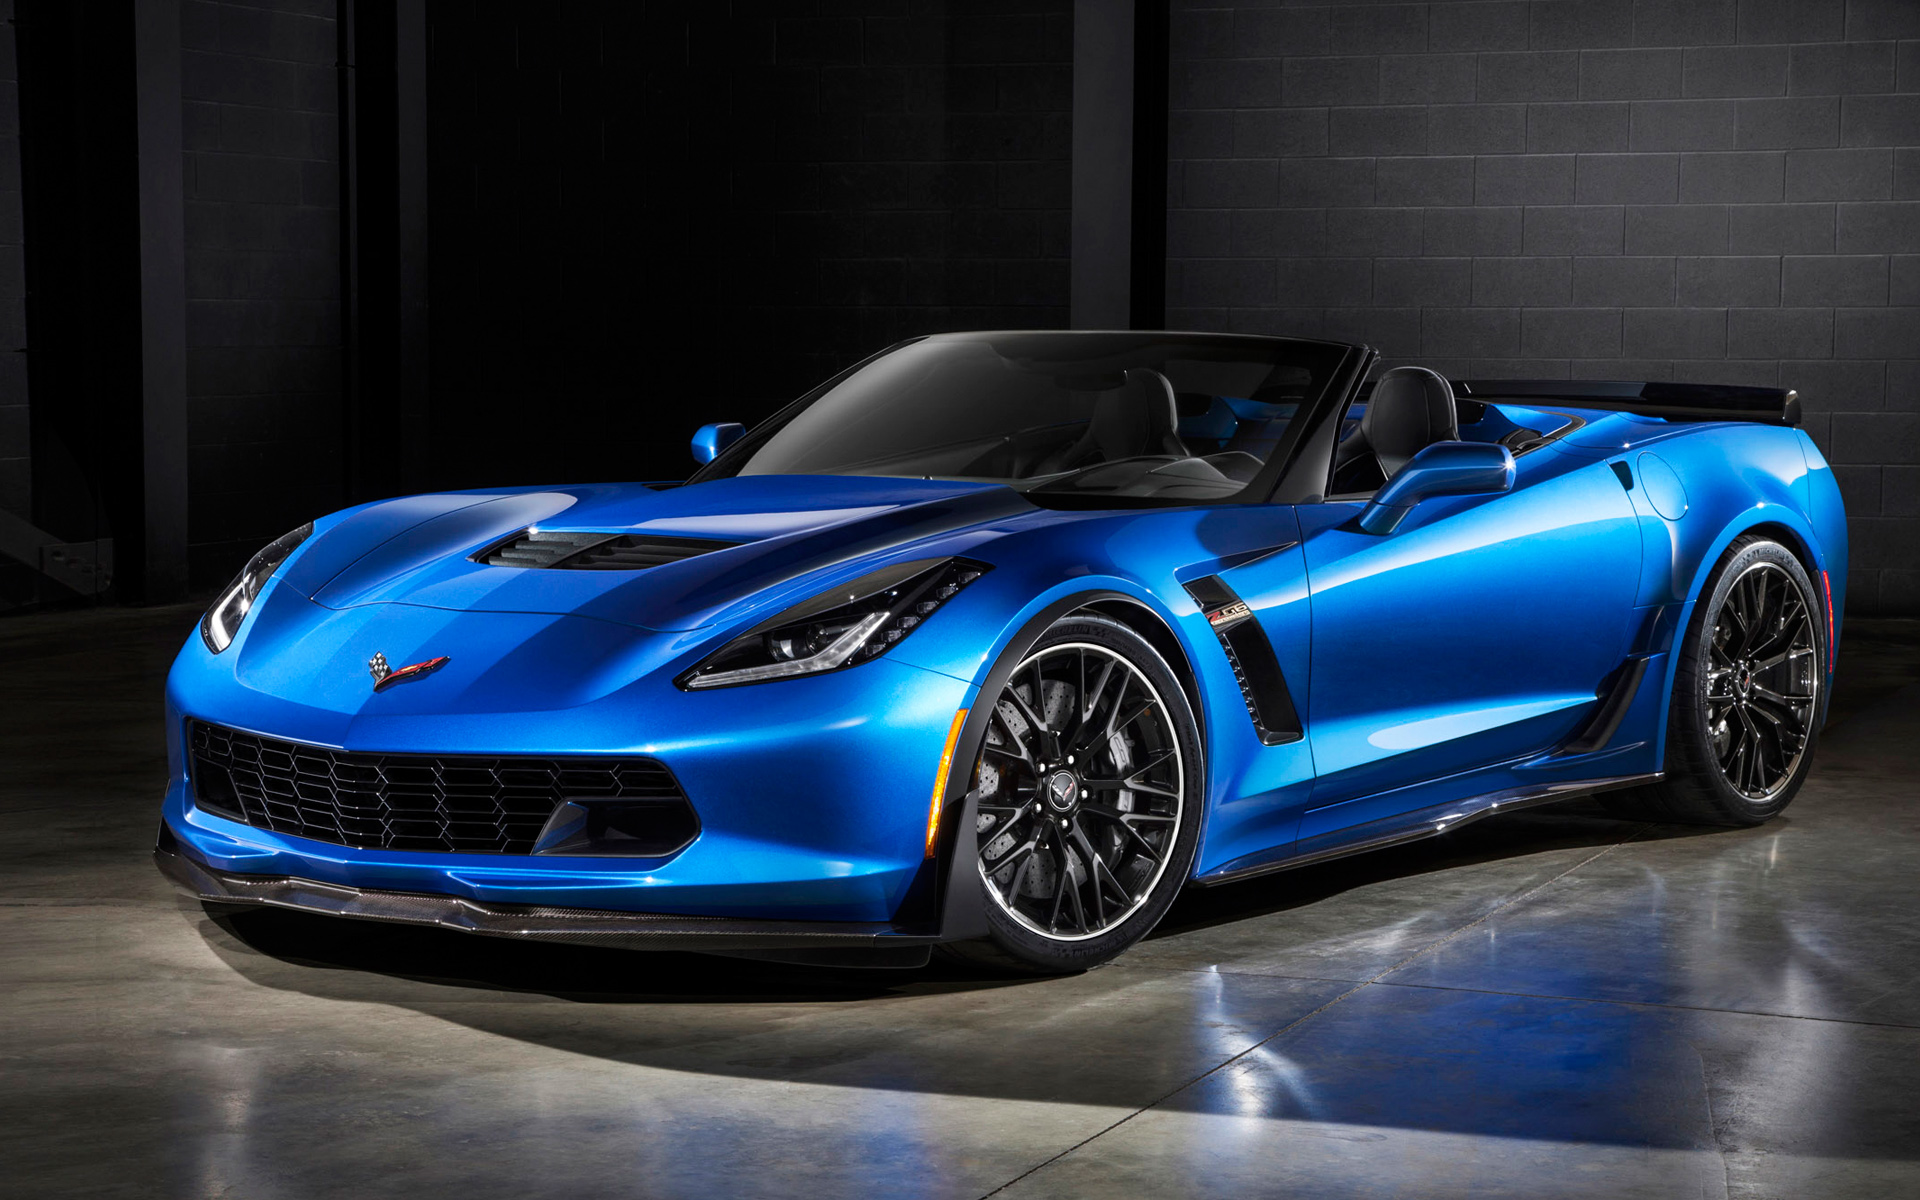 Chevrolet Corvette Z06 Convertible 2015 846.52 Kb